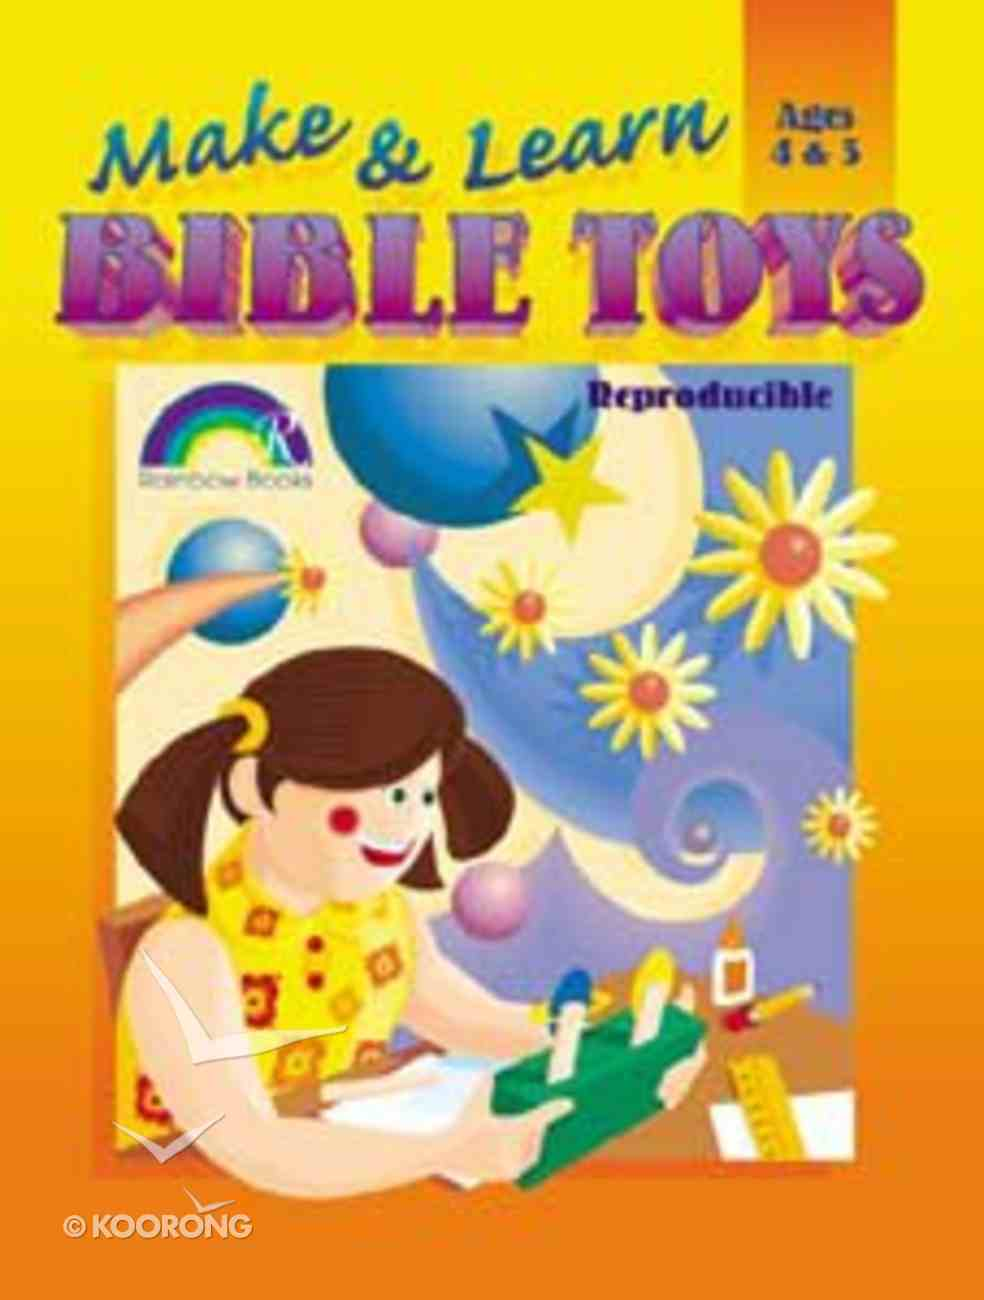 Ages 4&5 (Reproducible) (Make And Learn Bible Toys Series) Paperback